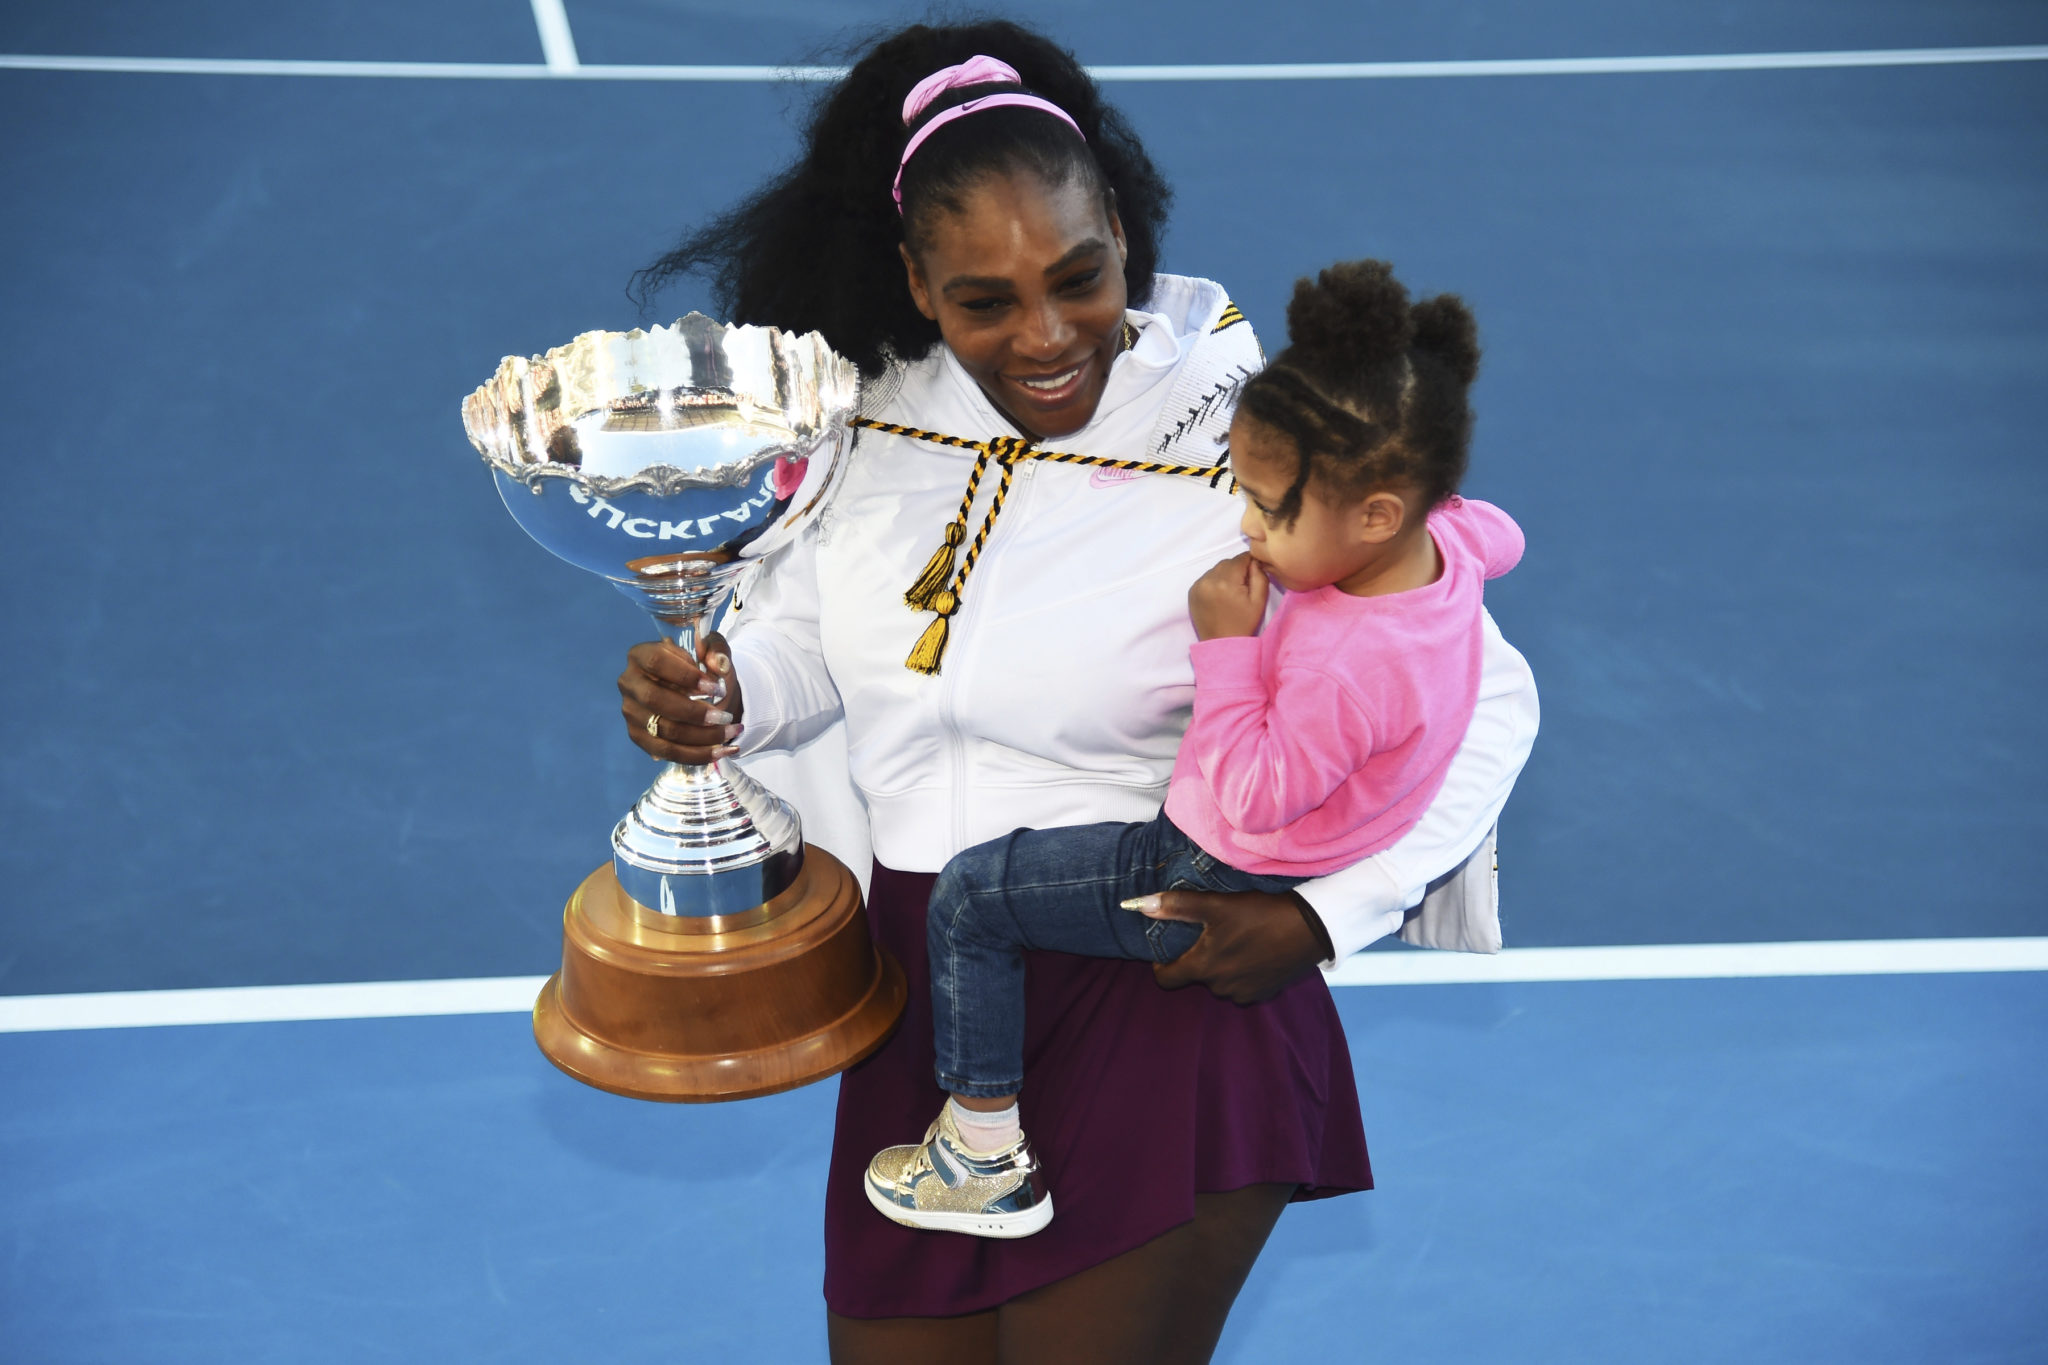 Serena Williams stands with her daughter after winning at the ASB Classic in Auckland